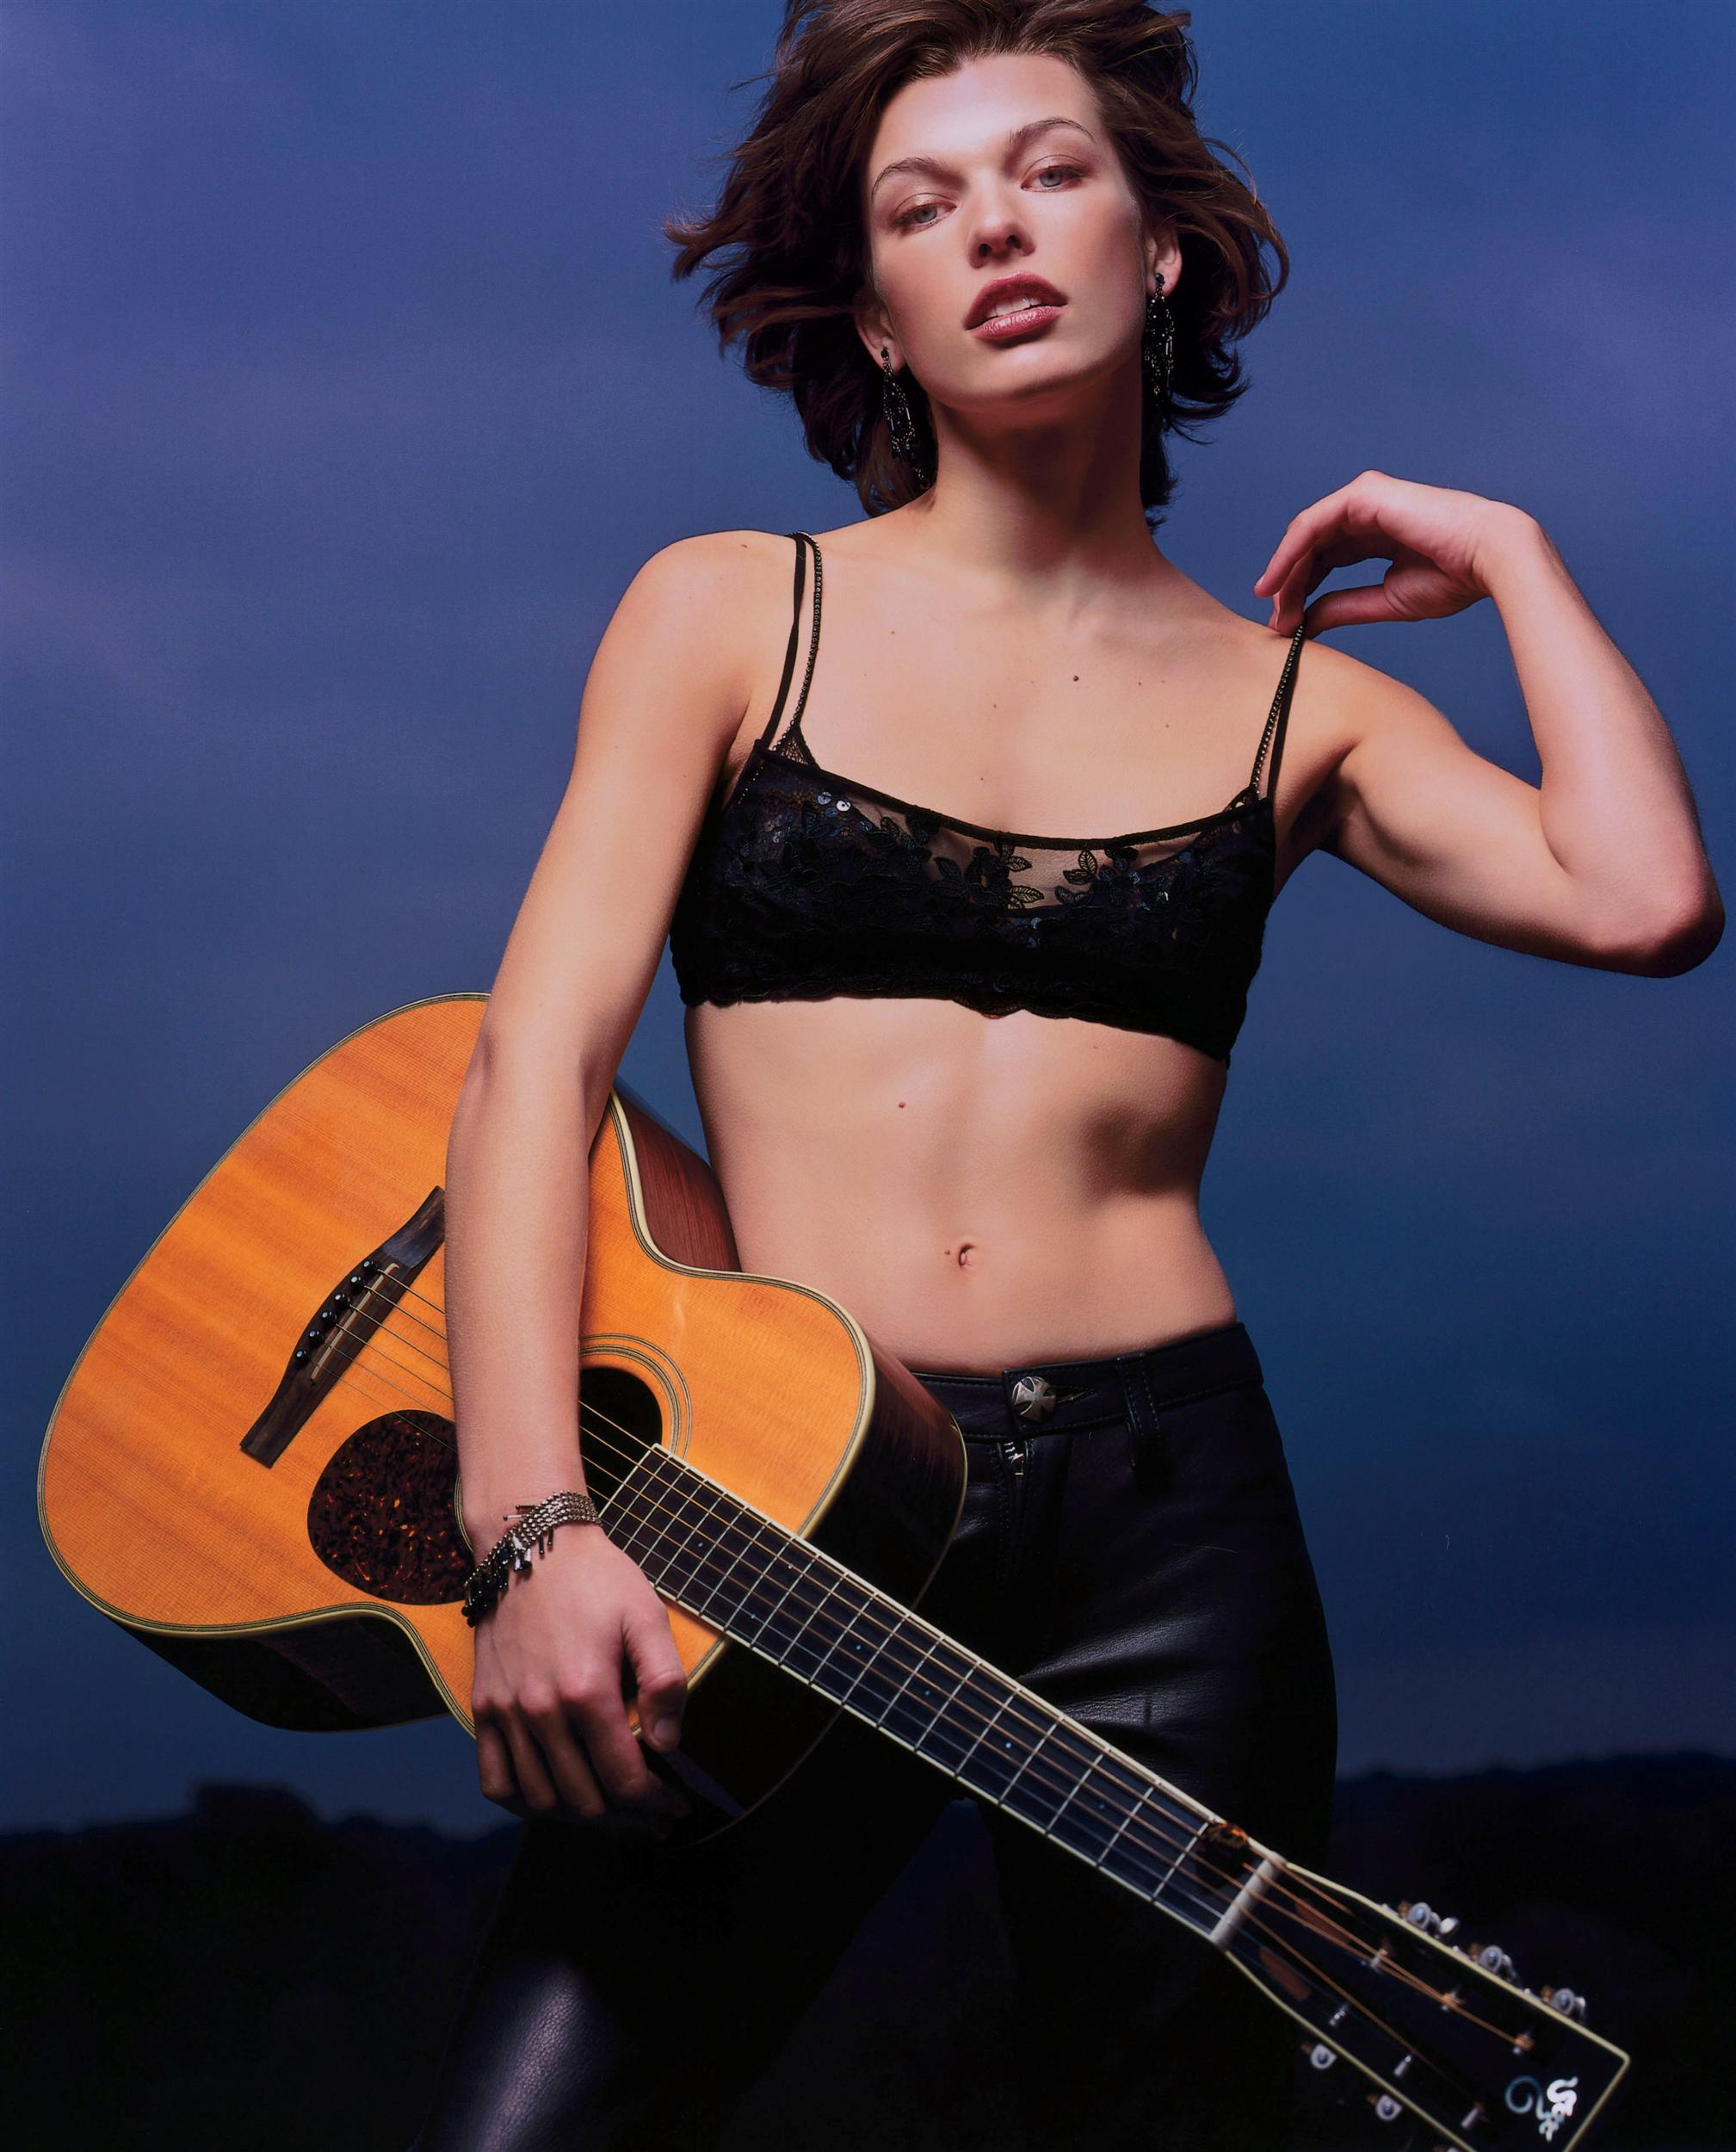 celebrity photos milla jovovich milla jovovich photo 171 3 vote Milla Jovovich